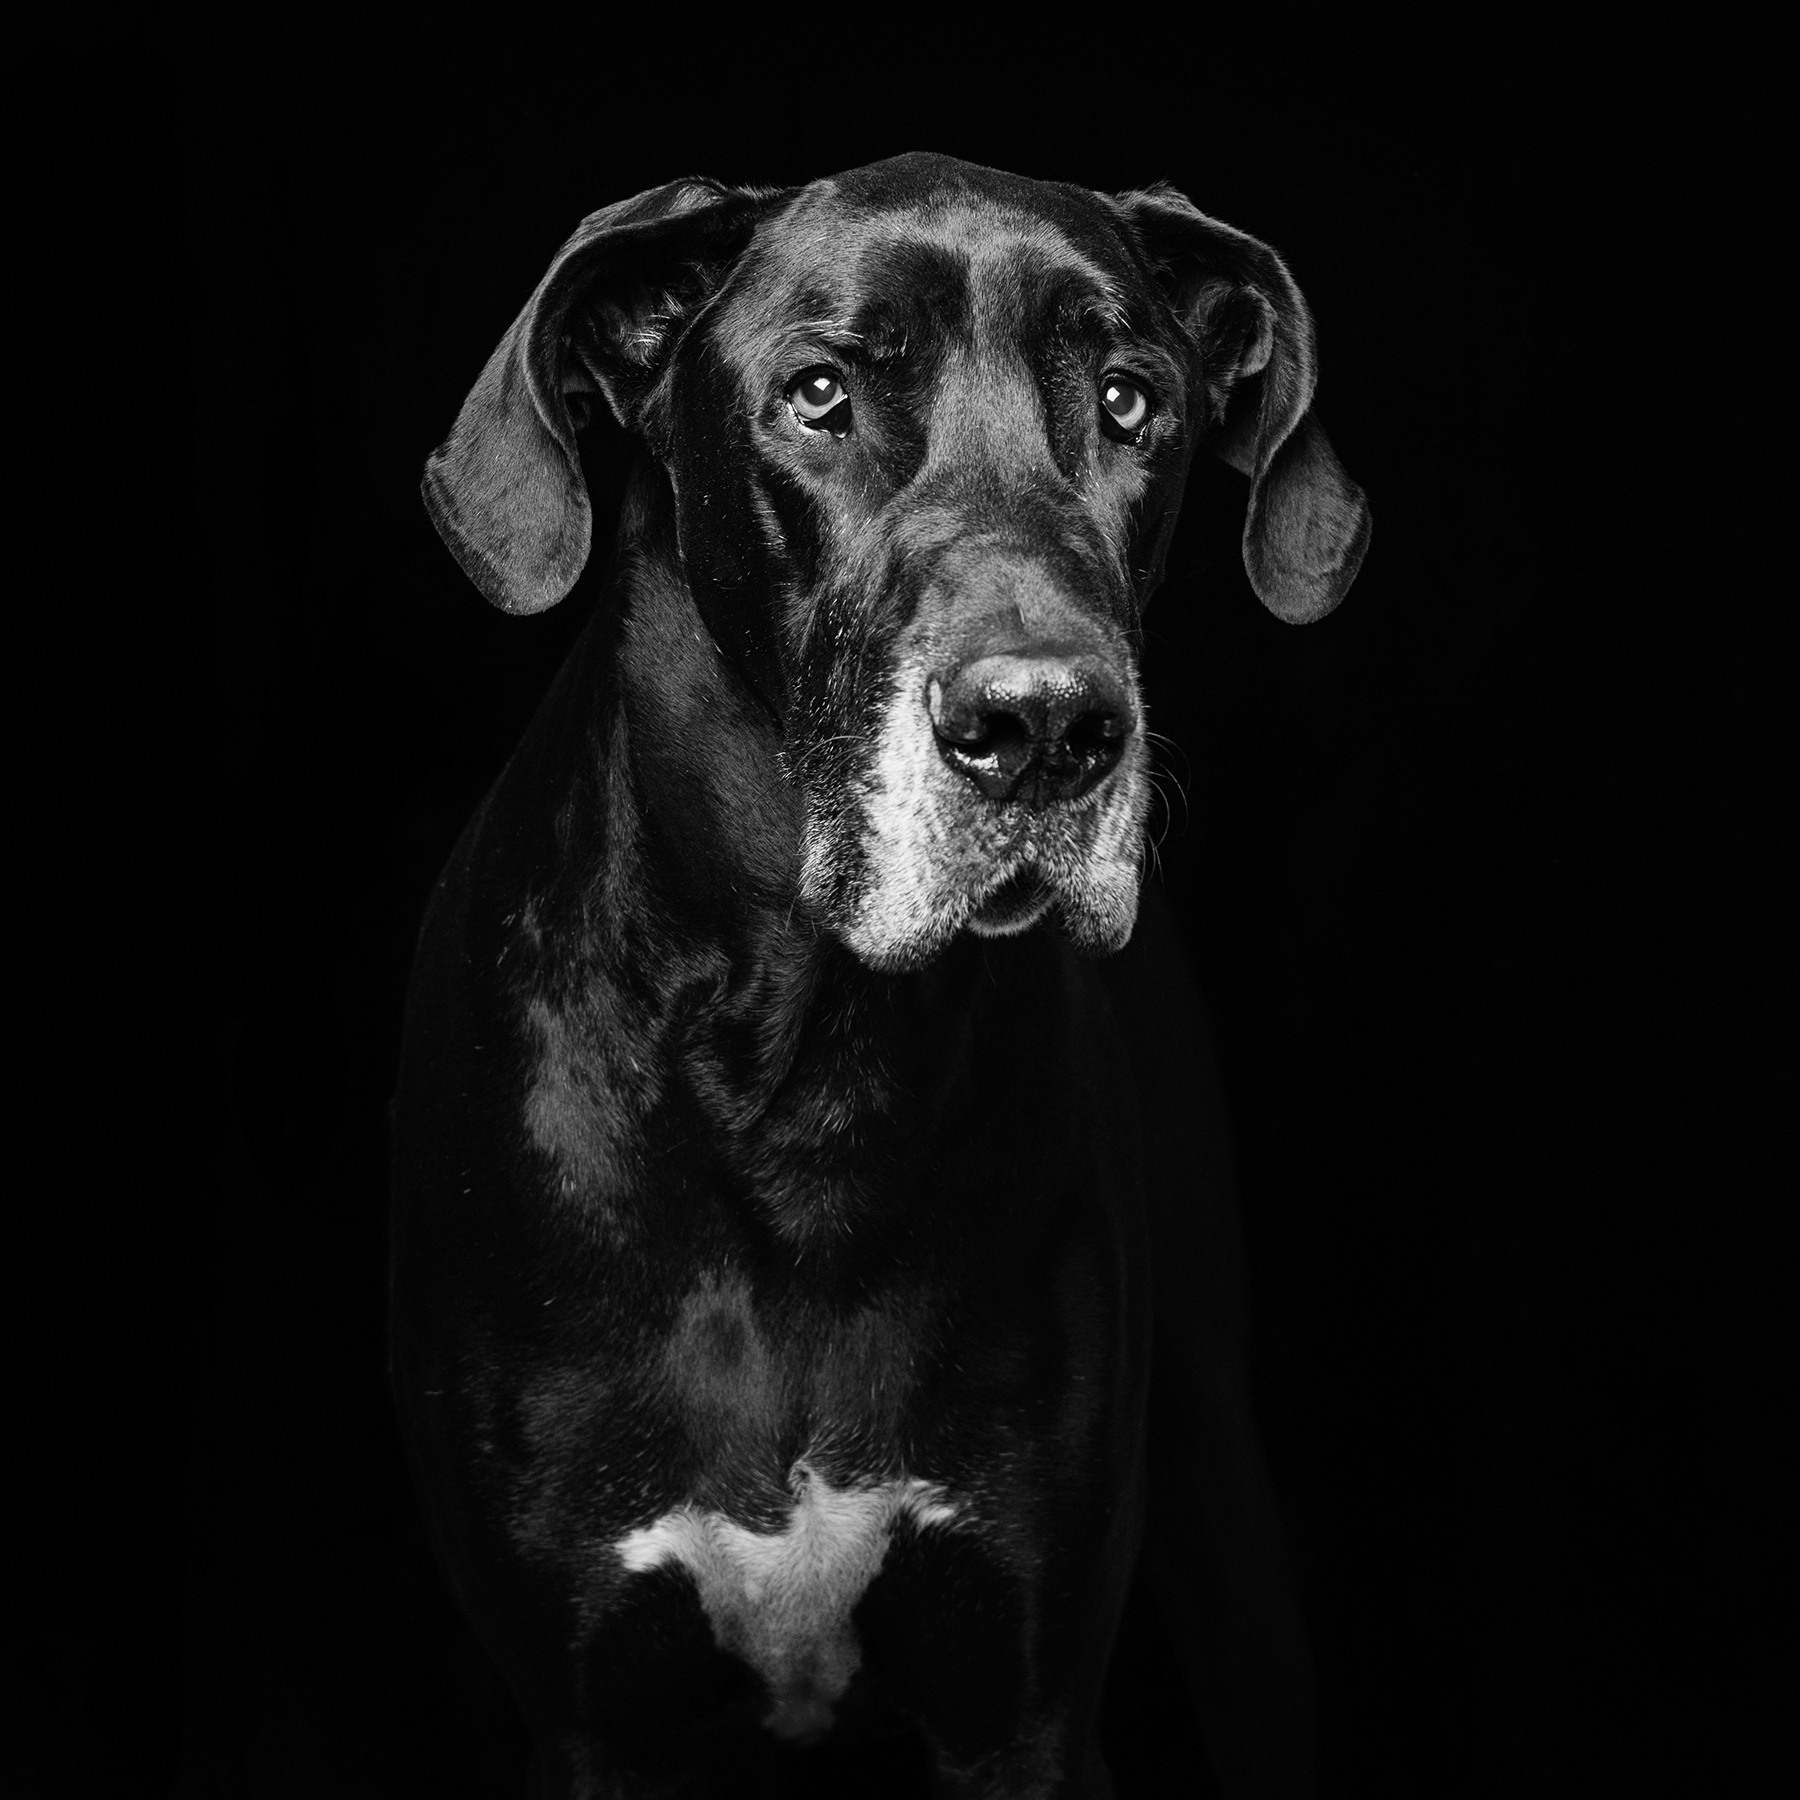 Overlooked Black Rescue Dogs Shine in Emotional Portraits